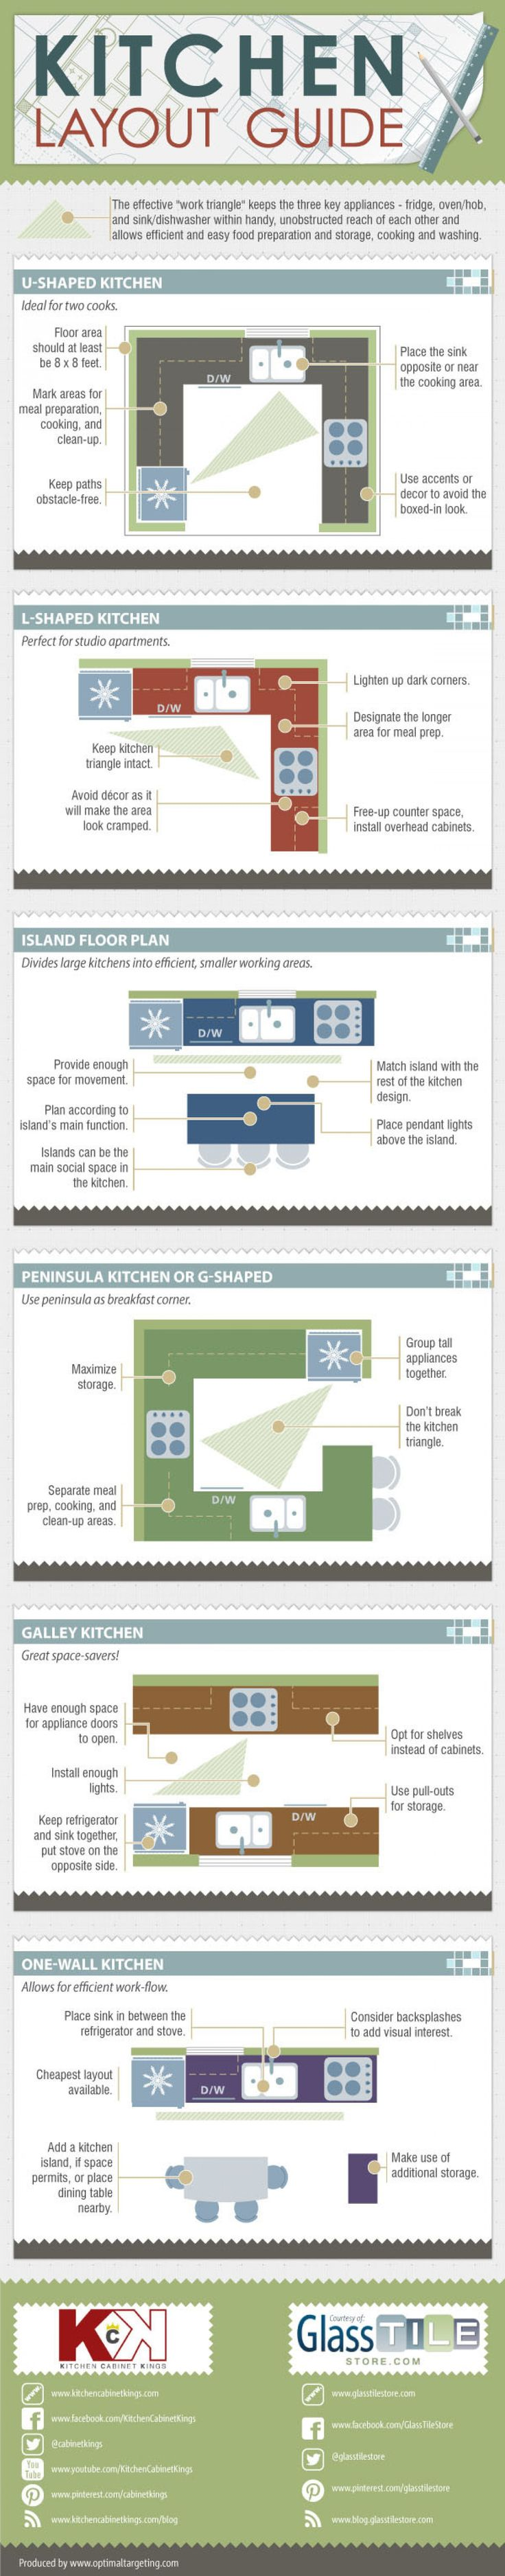 """Kitchen Layout Guide"" is a detailed infographic from GlassTileStore.com and www.kitchencabinetkings.com It describes the different shapes which a kitchen may take on, and how one must take care not to break the effective ""work triangle"". The kitchen work triangle consists of three key appliances:the fridge, oven, and sink/dishwasher. Each kitchen and floor plan illustrates and gives advice on the best positions for the work triangle in order to have an efficient and harmonious lay-out."